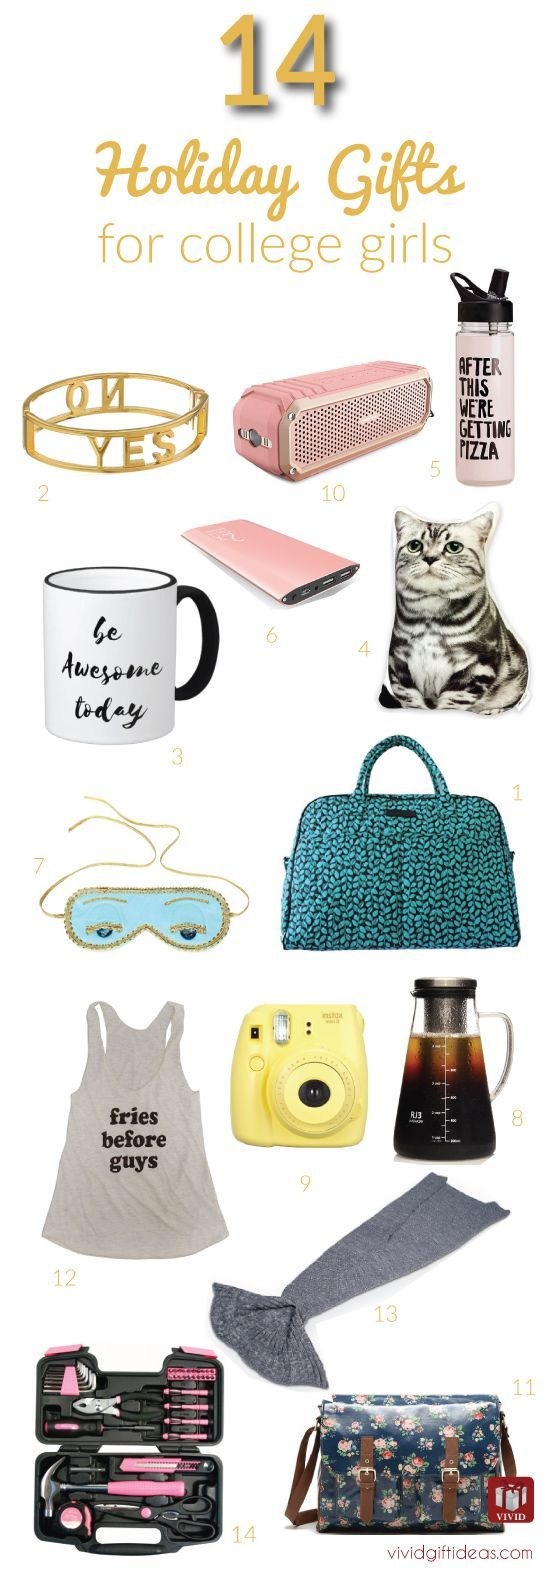 14 Great Christmas Gift Ideas for College Girls | Pinterest ...